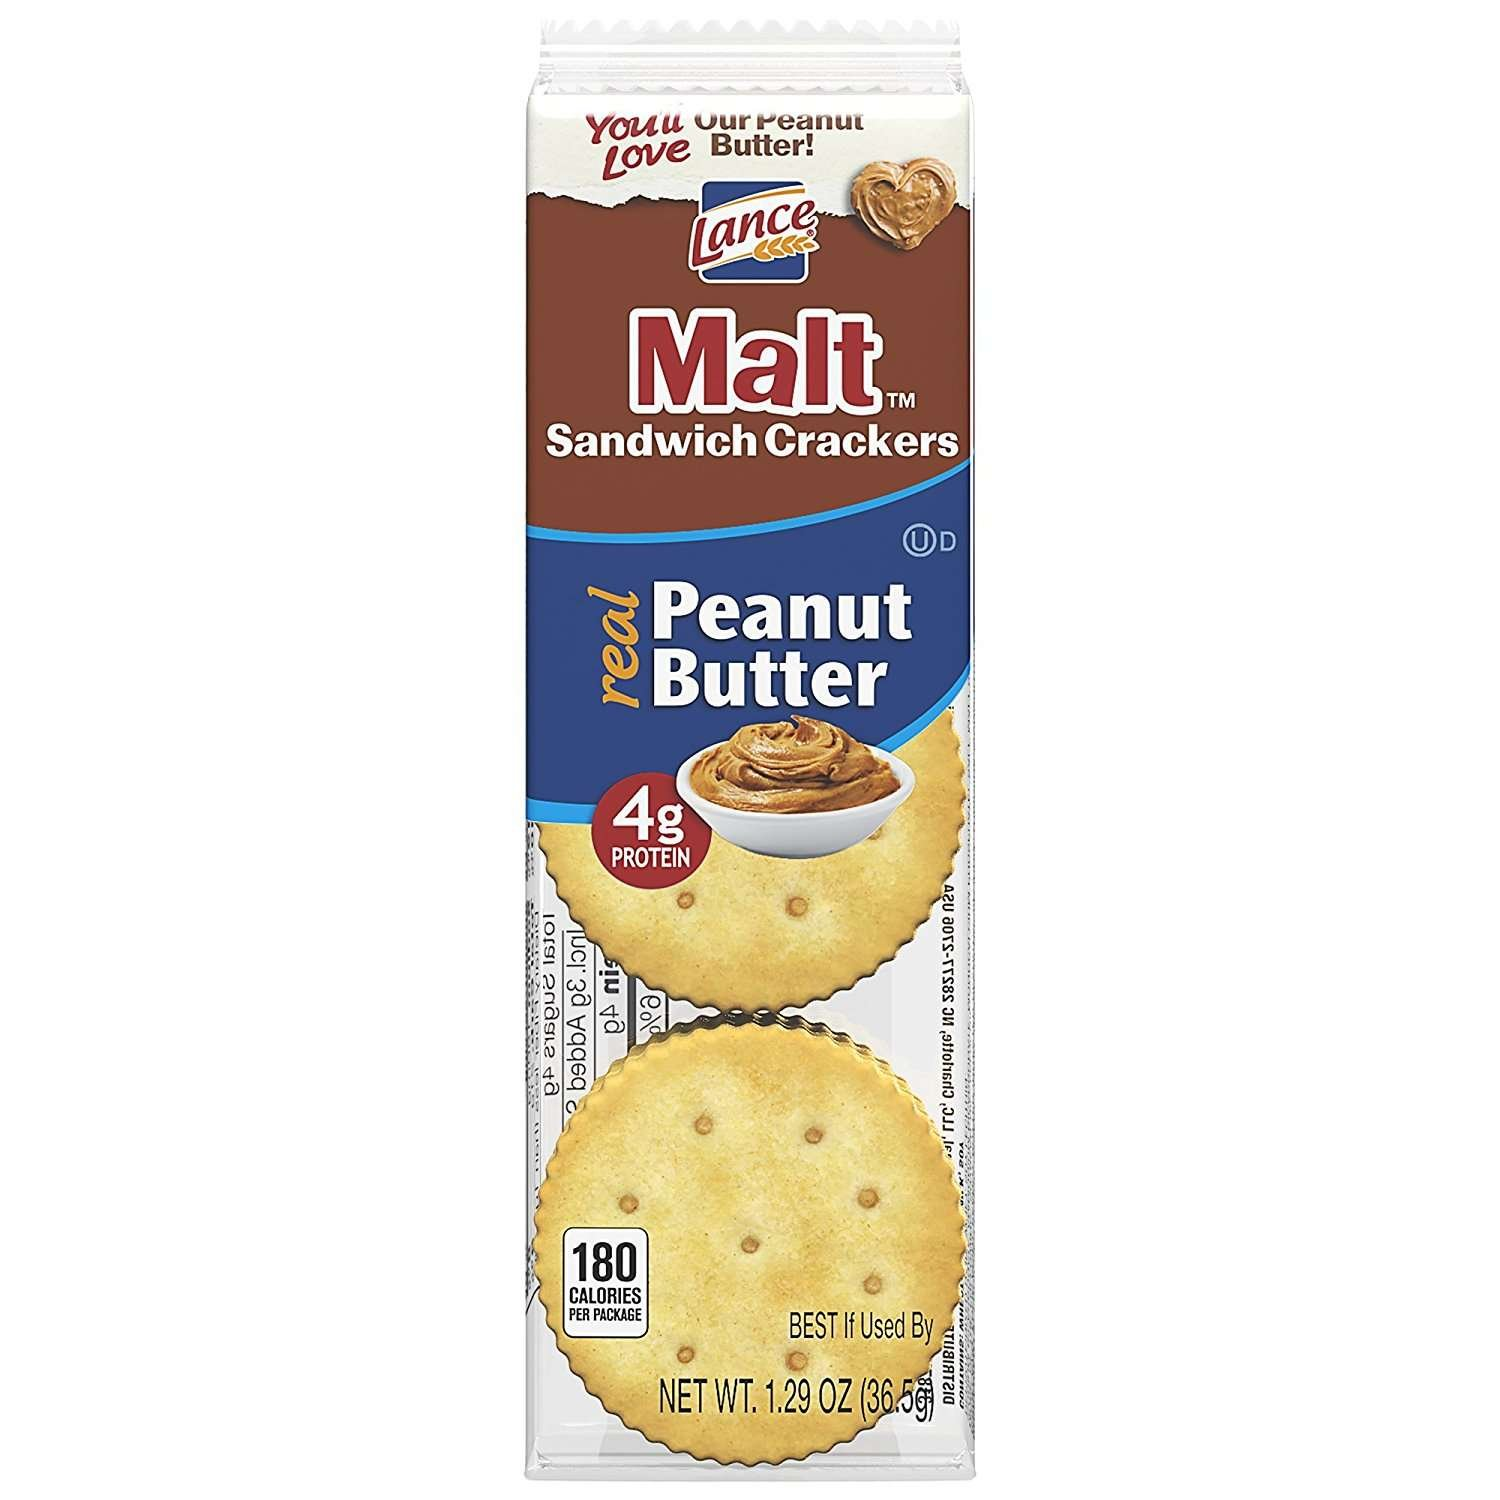 Lance Sandwich Crackers, Malt with Peanut Butter, 8-Count Boxes (Pack of 14) by Lance (Image #4)